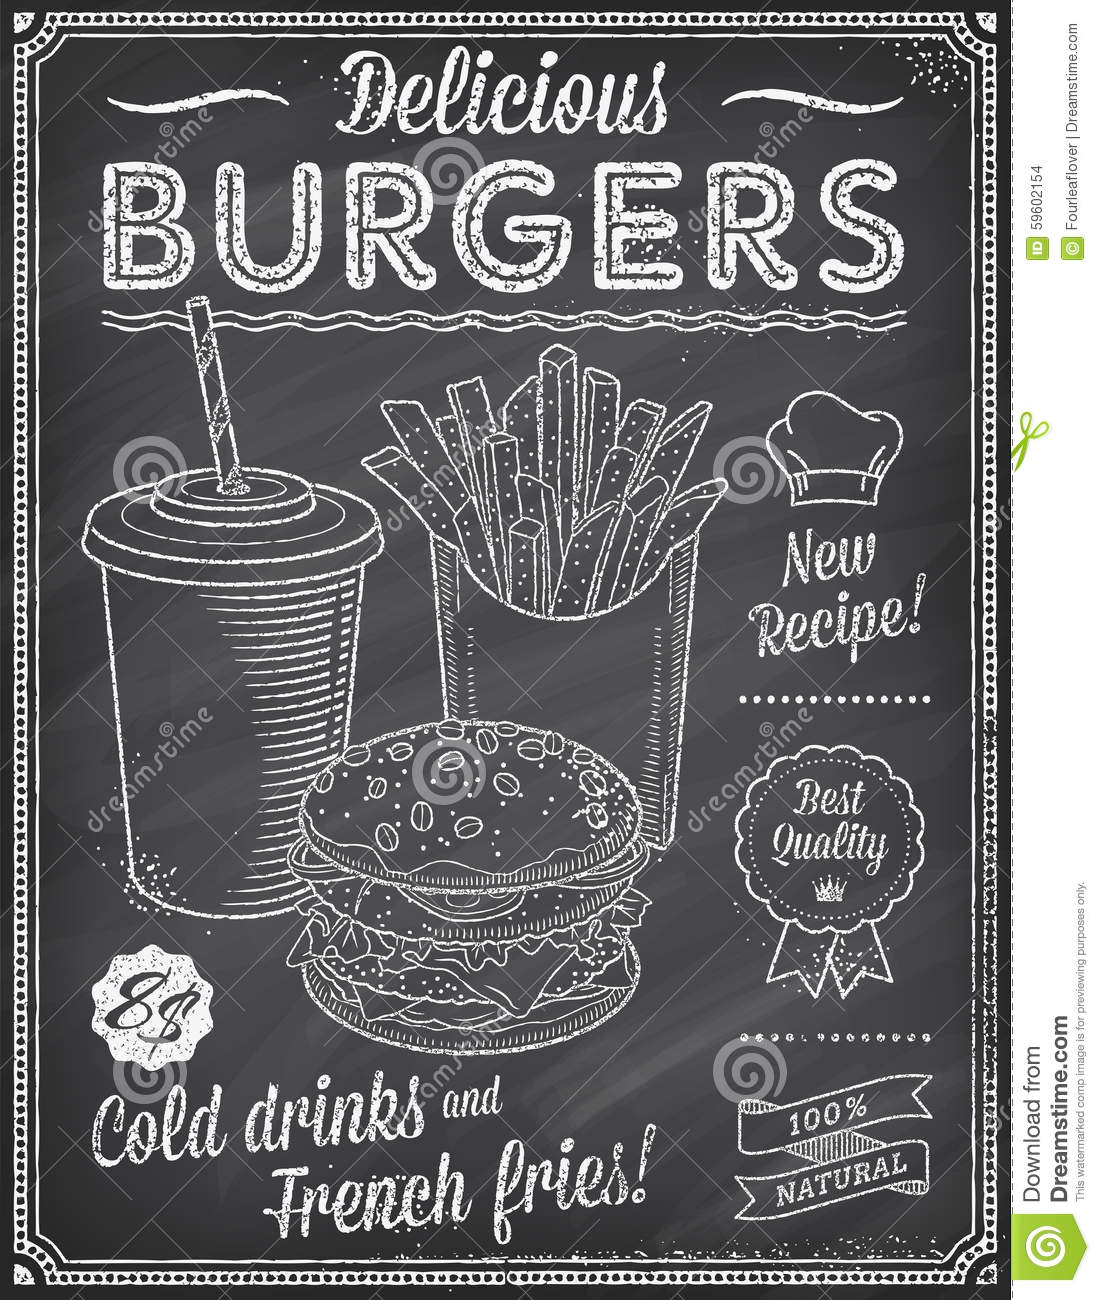 Home Design Ideas Blackboard: Grunge Chalkboard Fast Food Menu Template 4 Stock